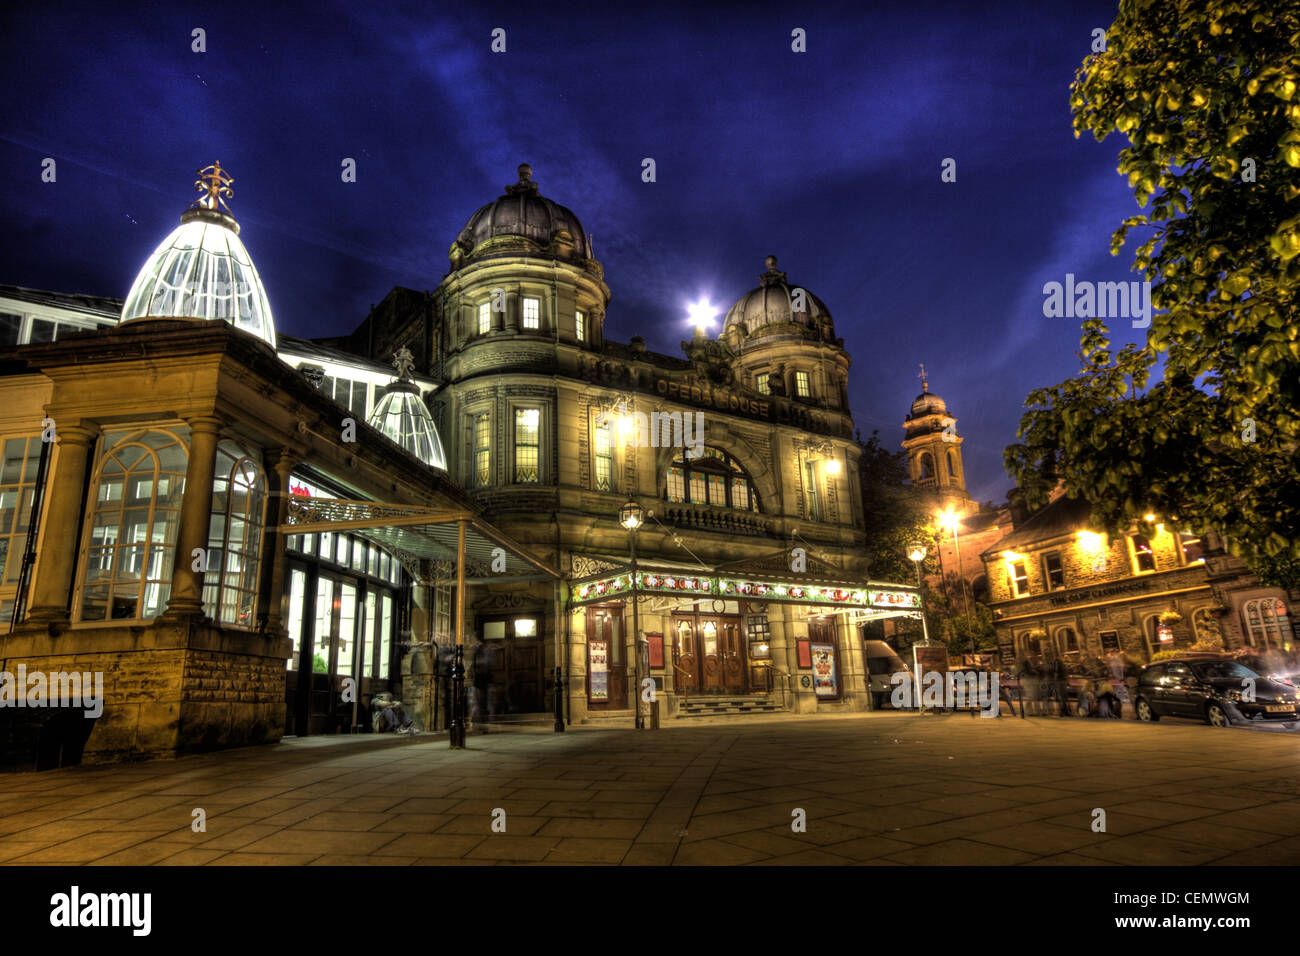 Buxton Victorian Opera House at night,Derbyshire,East Midlands,England,UK gotonysmith stone ornate,evening,dramatic,gotonysmith,tour,tourist,tourism,England,country,countryside,morning,attraction,attractions,play,plays,theatre,theatres,comedy,band,bands,English,@hotpixuk,hotpixuk,Buy Pictures of,Buy Images Of,Peak District